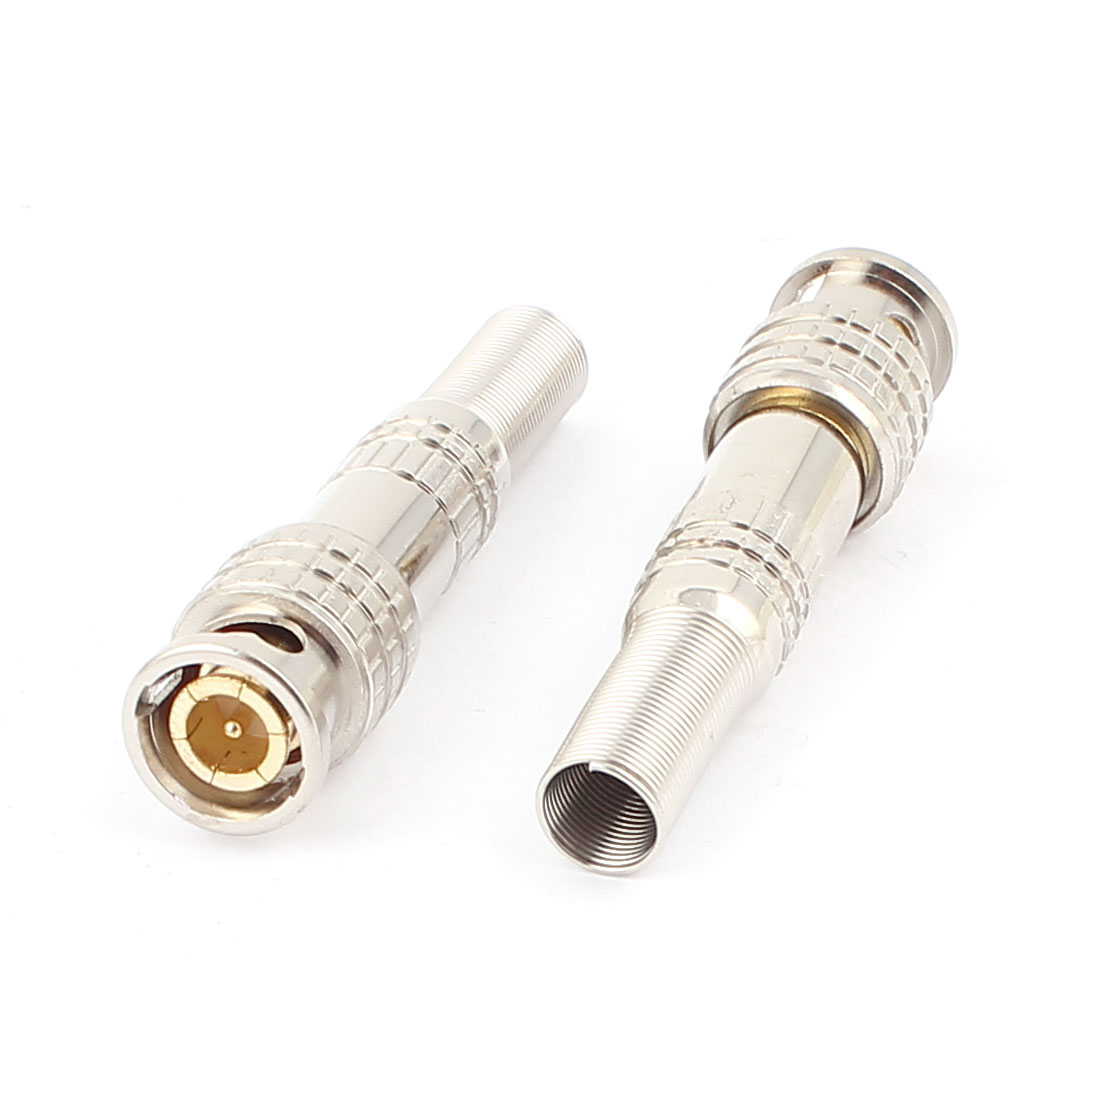 2pcs Spring End Welding Video Cable RF Coaxial BNC Male Connector Adapter